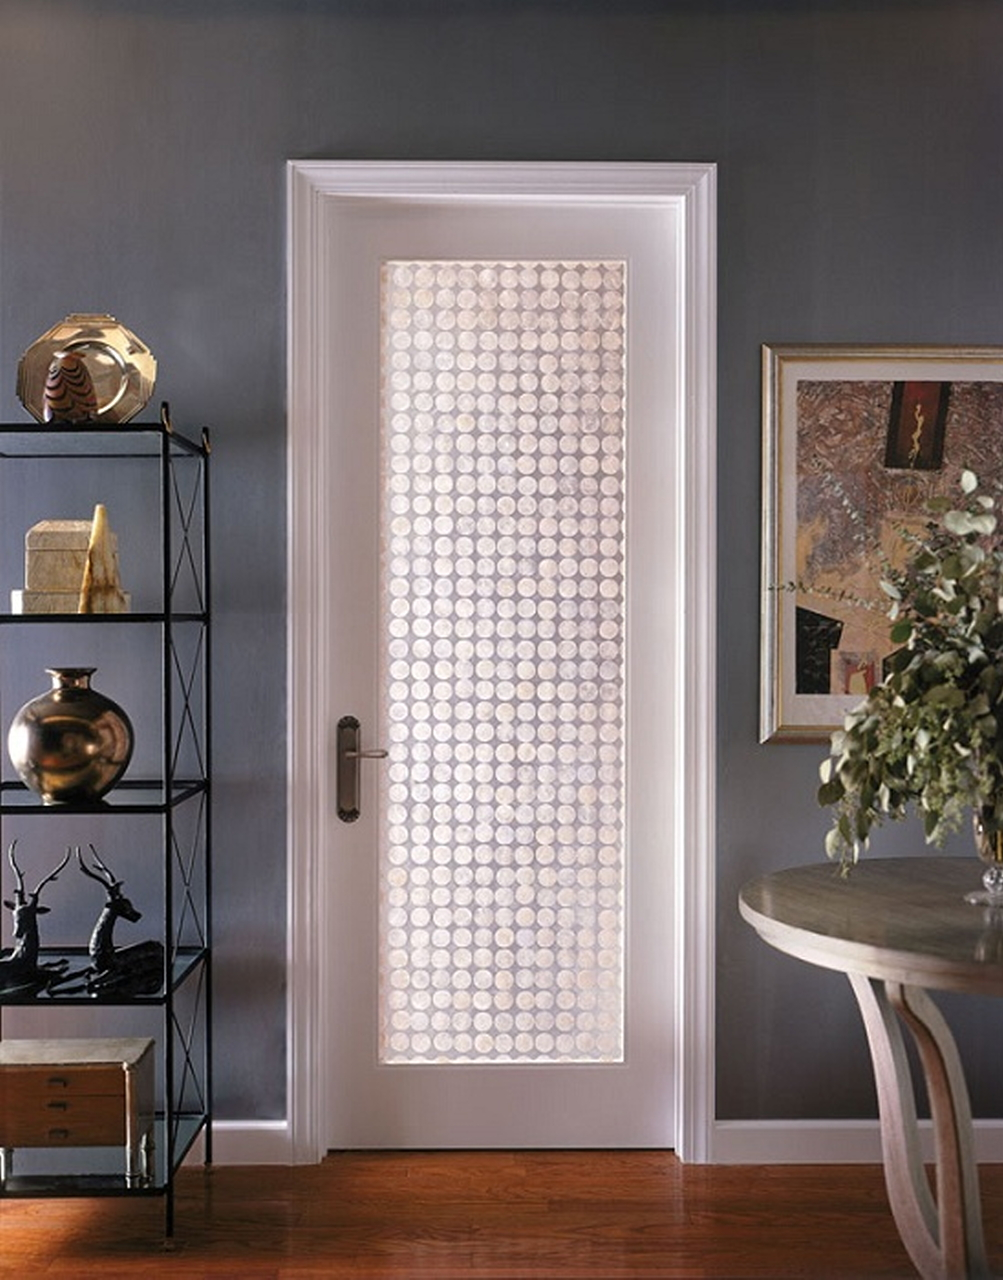 Jazzy 39 s interior decorating interior frosted glass doors - Decorative interior doors with glass ...